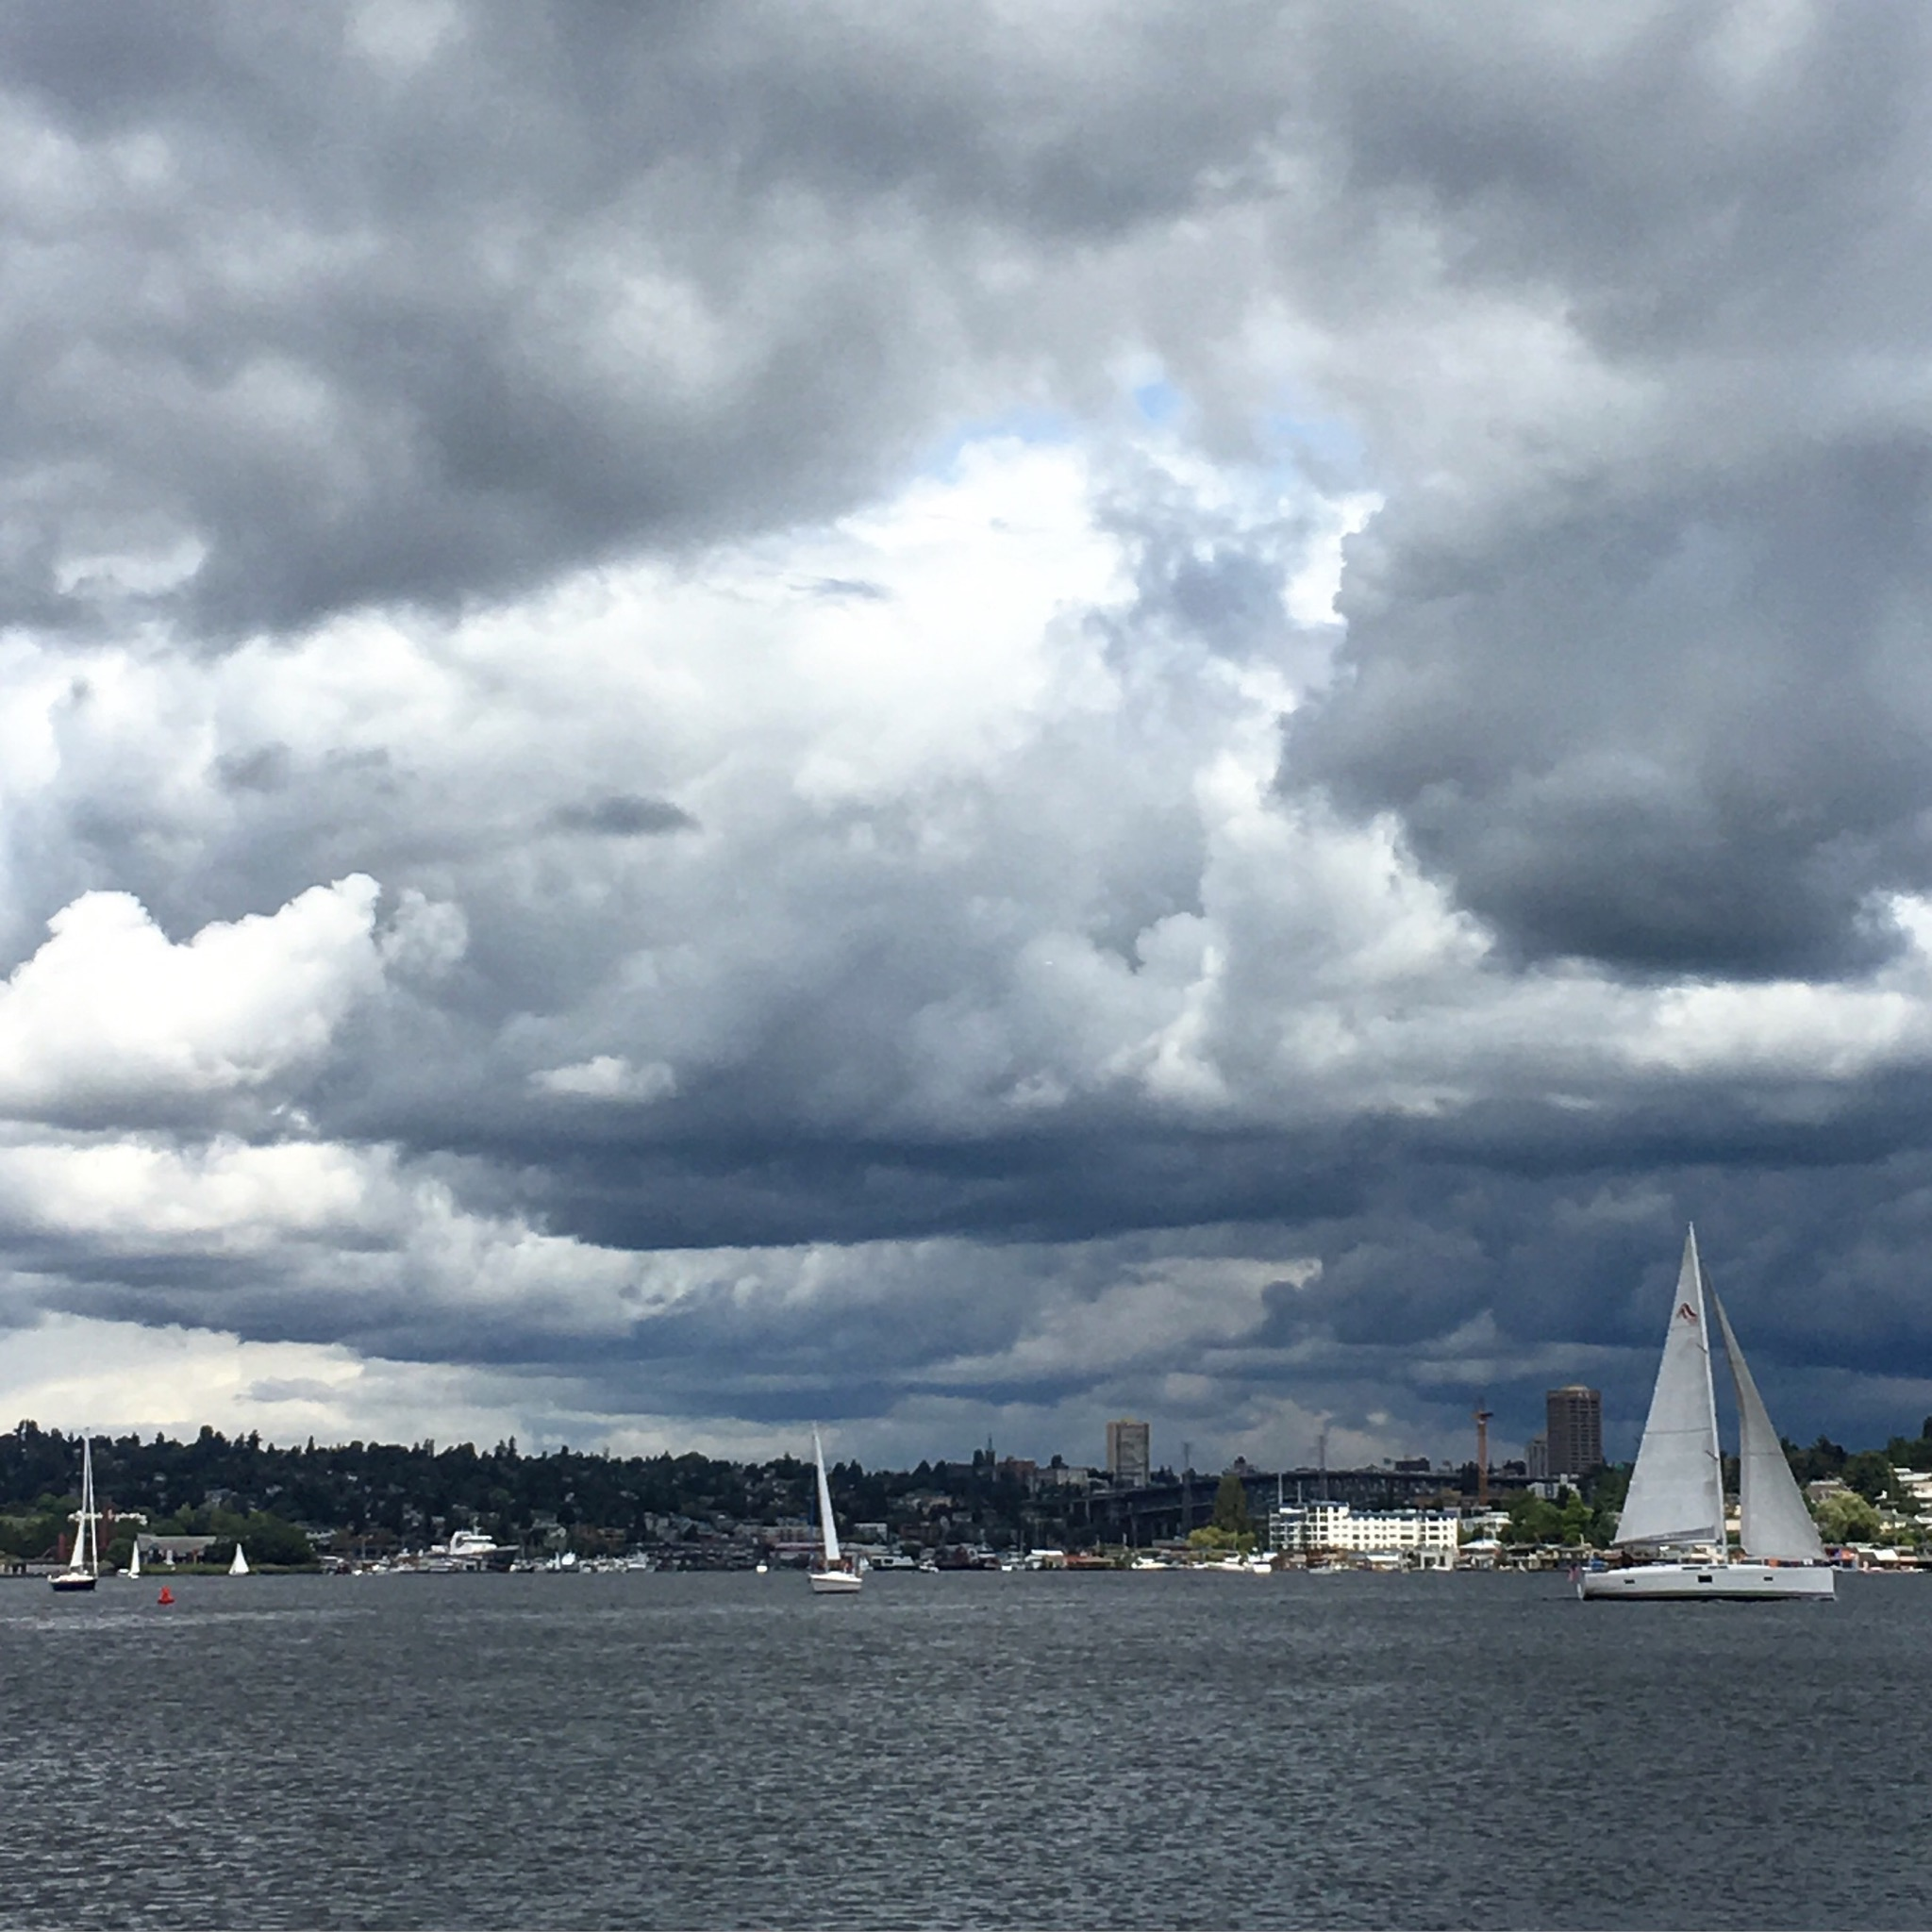 Clouds overtaking the sky above Lake Union. (photo by Cat Stelzer)